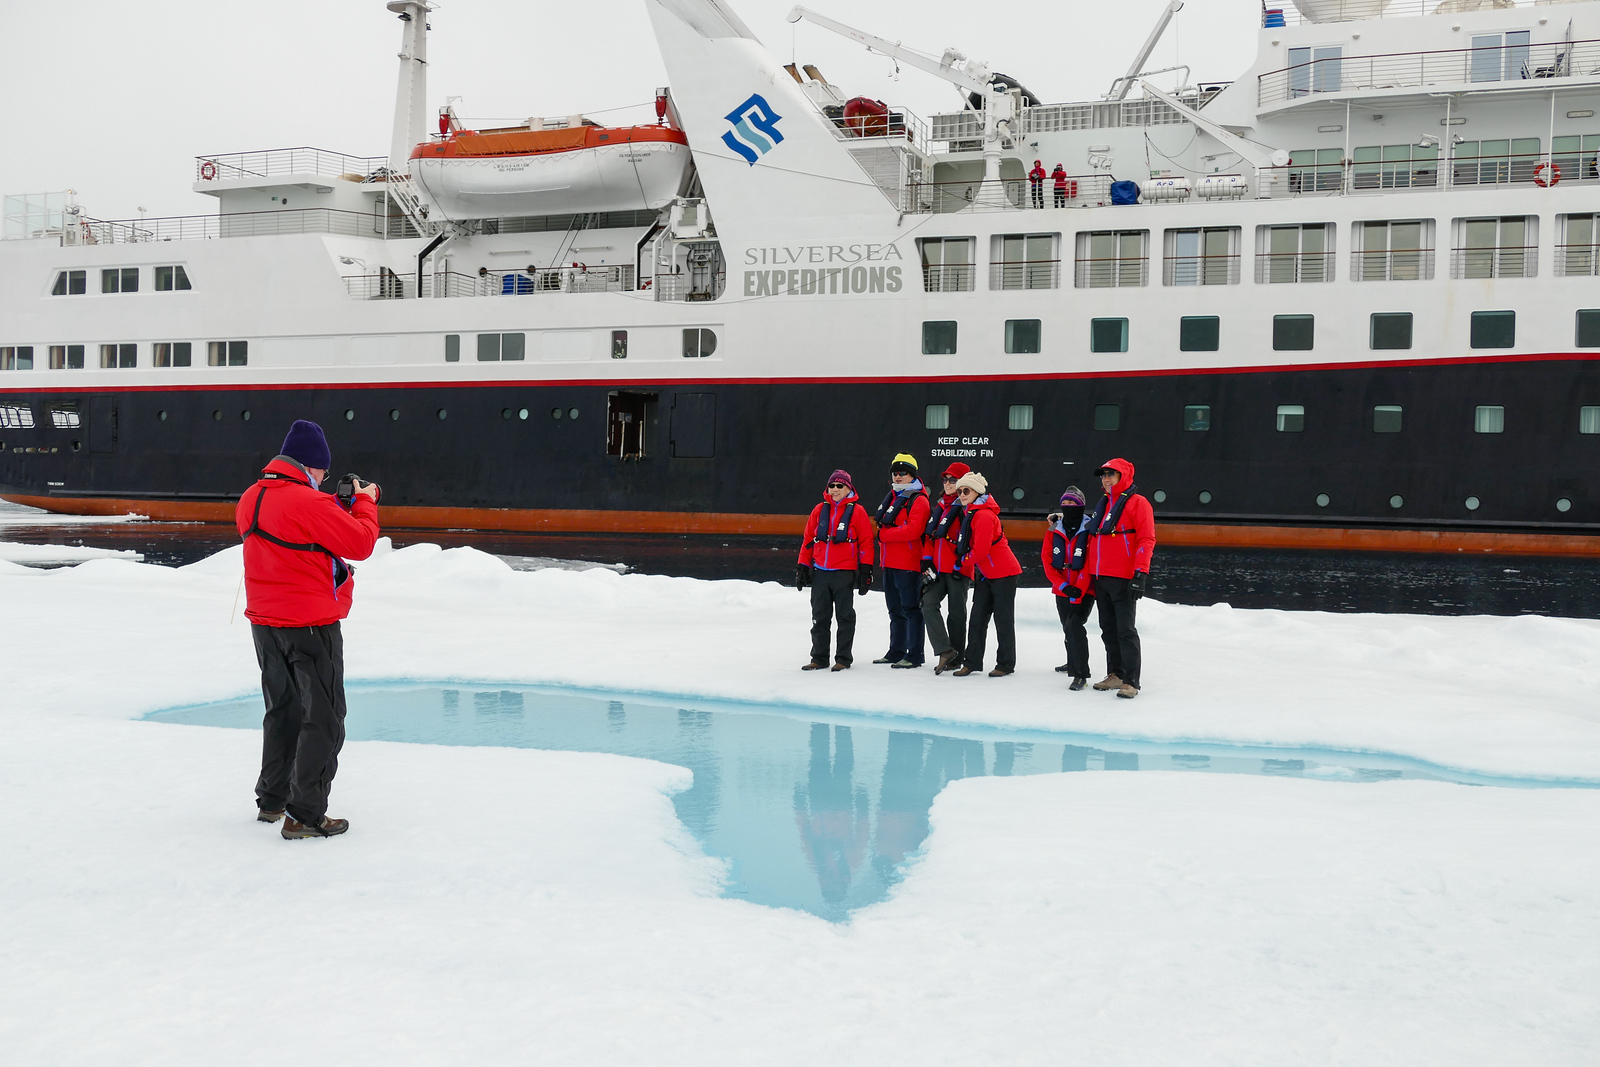 Boomer travel - luxury cruise - take photos in front of the ship on a luxury expedition cruise to the Arctic ice.